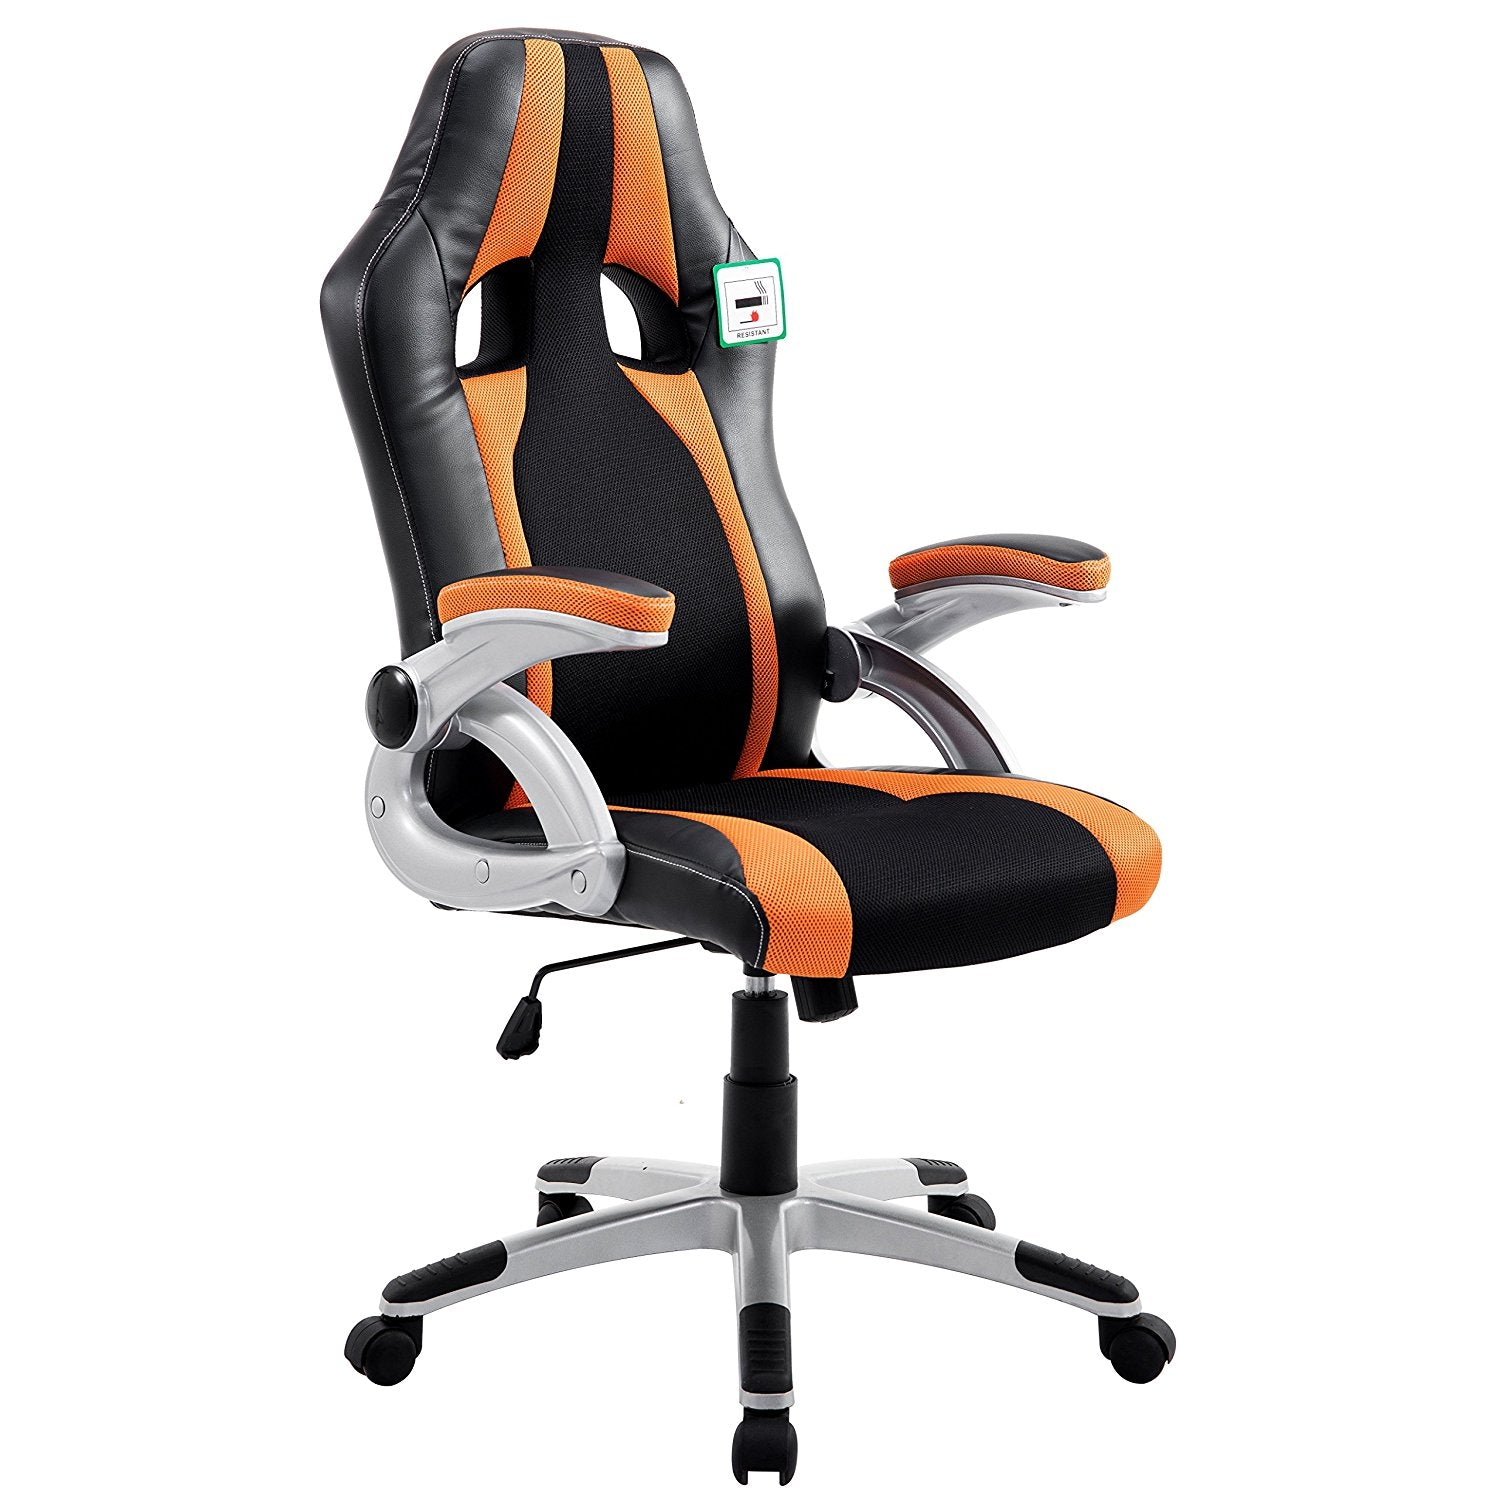 CTF High Back PU Leather & Fabric Racing Gaming Swivel Chair with Adjustable Armrests, Orange